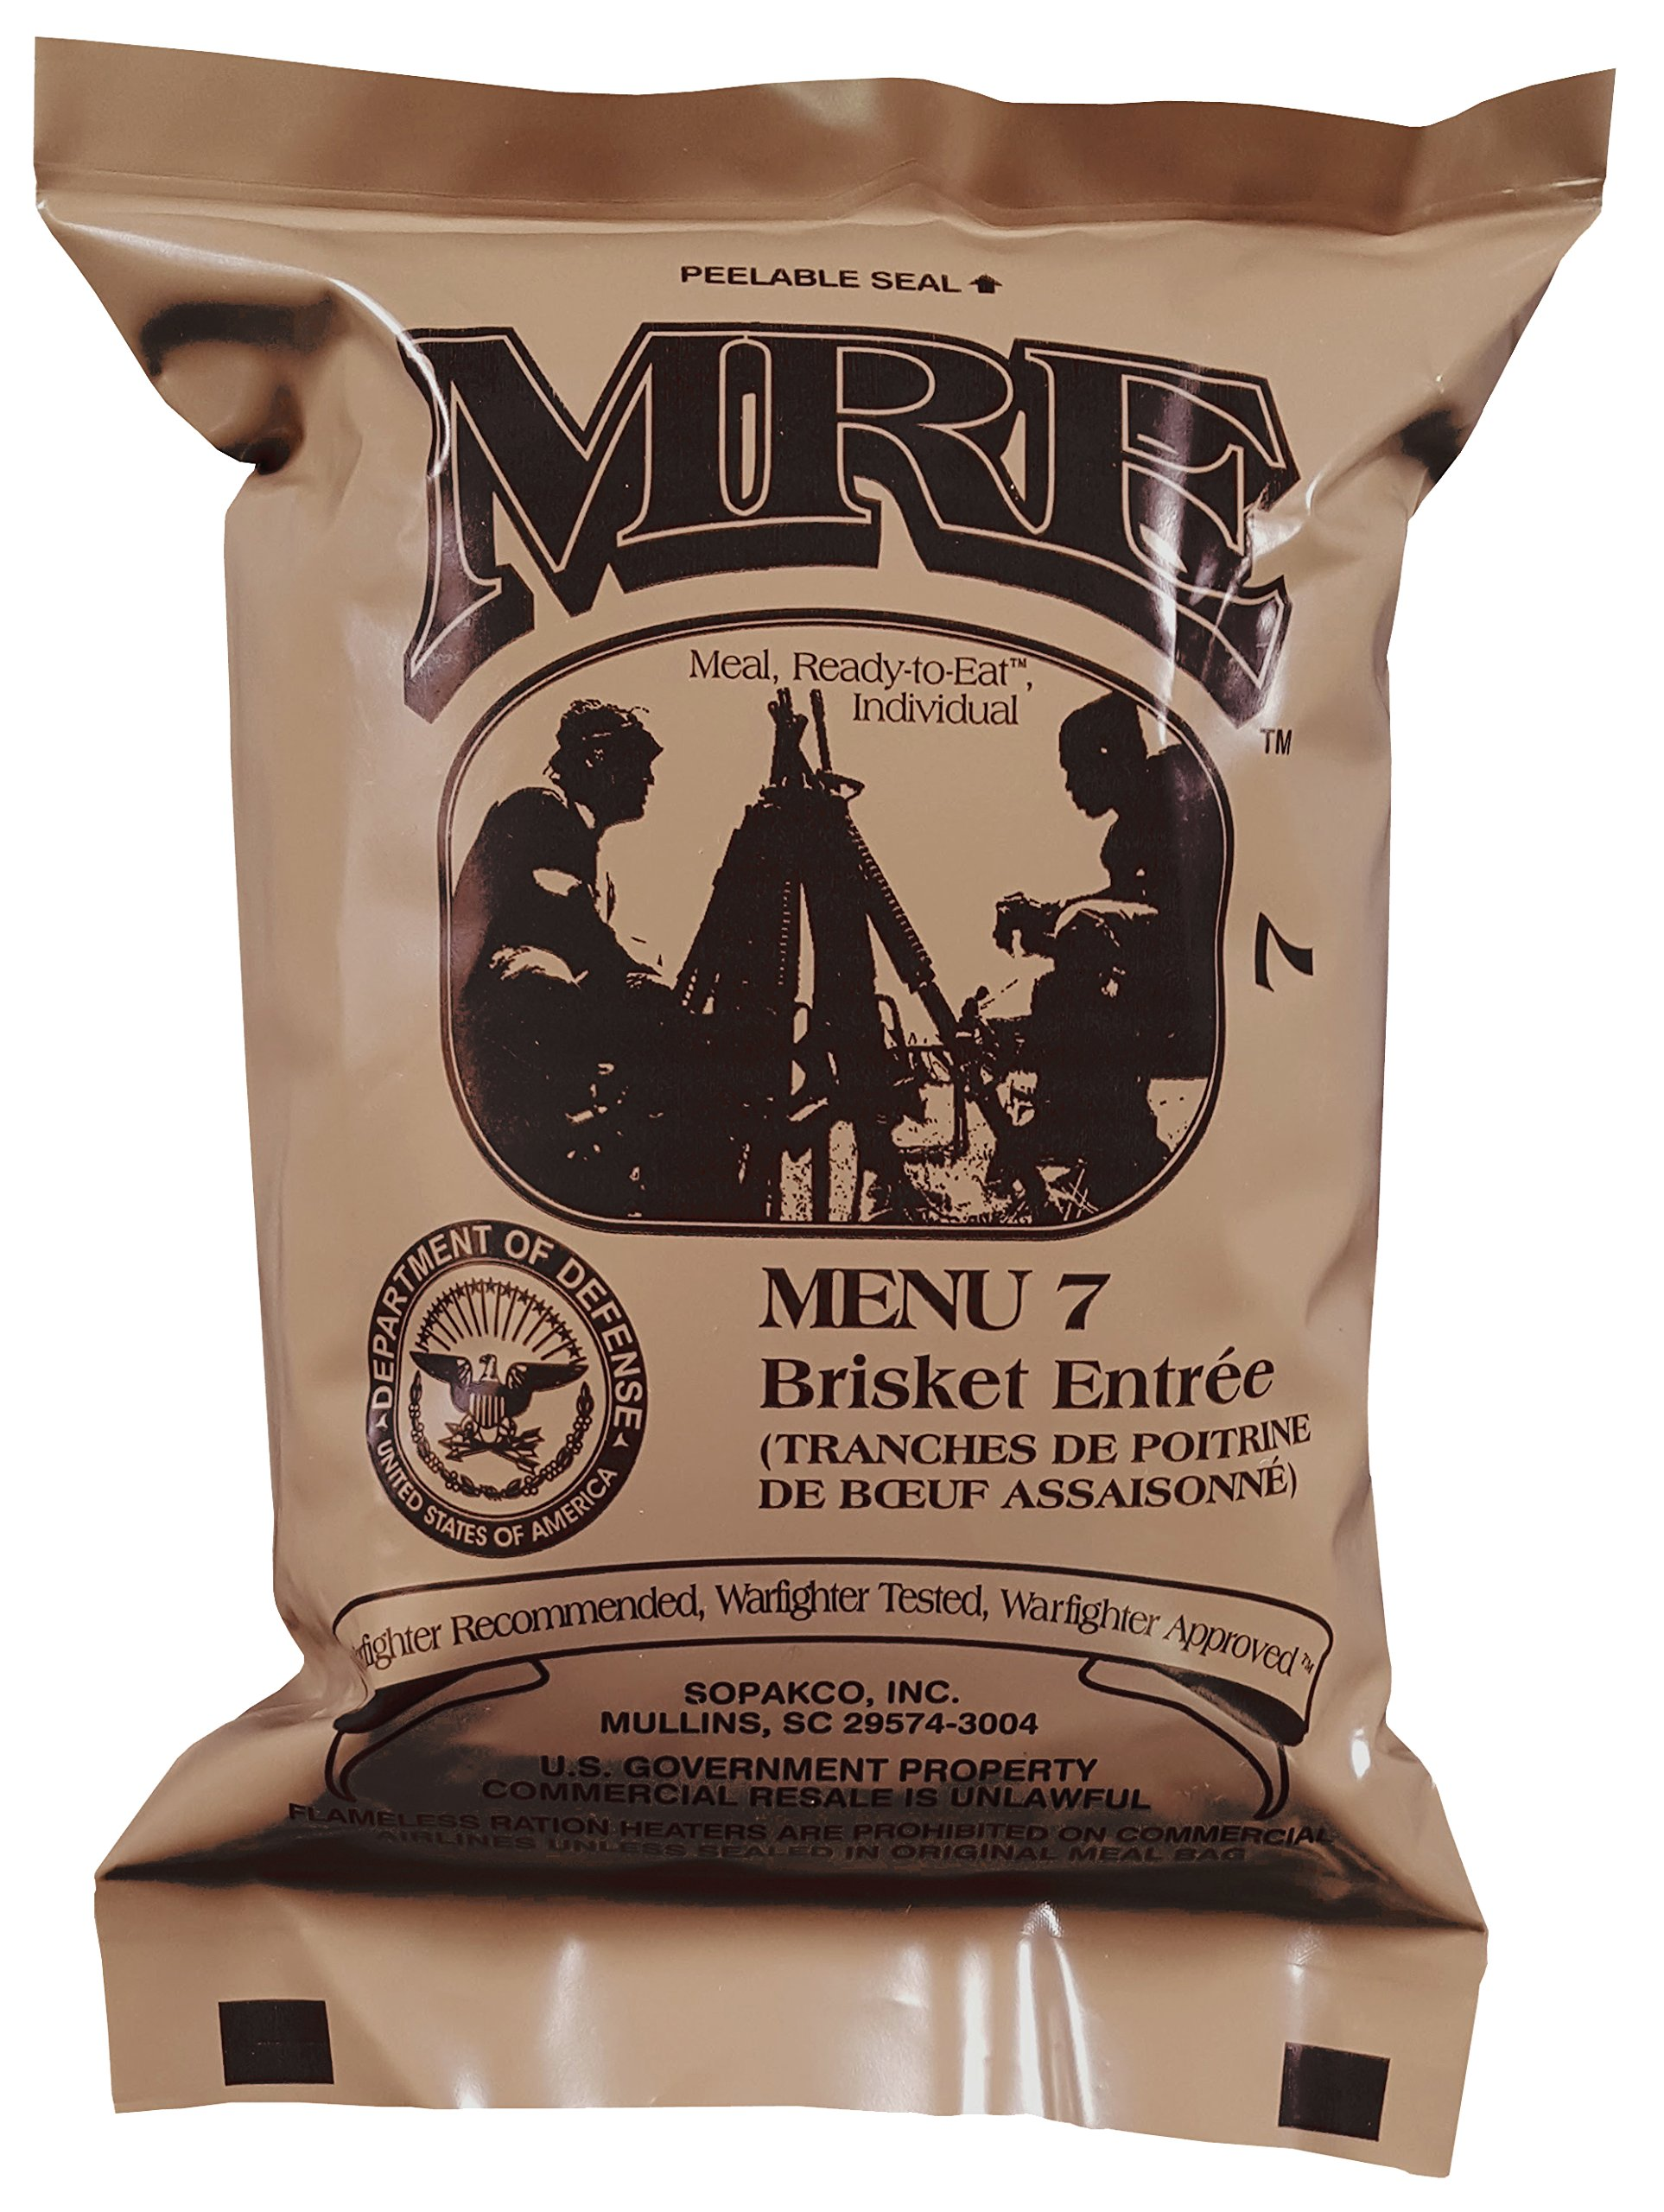 ULTIMATE MRE, Pack Date Printed on Every Meal - Meal-Ready-To-Eat. Inspected by Western Frontier. Genuine Mil Surplus. by Western Frontier